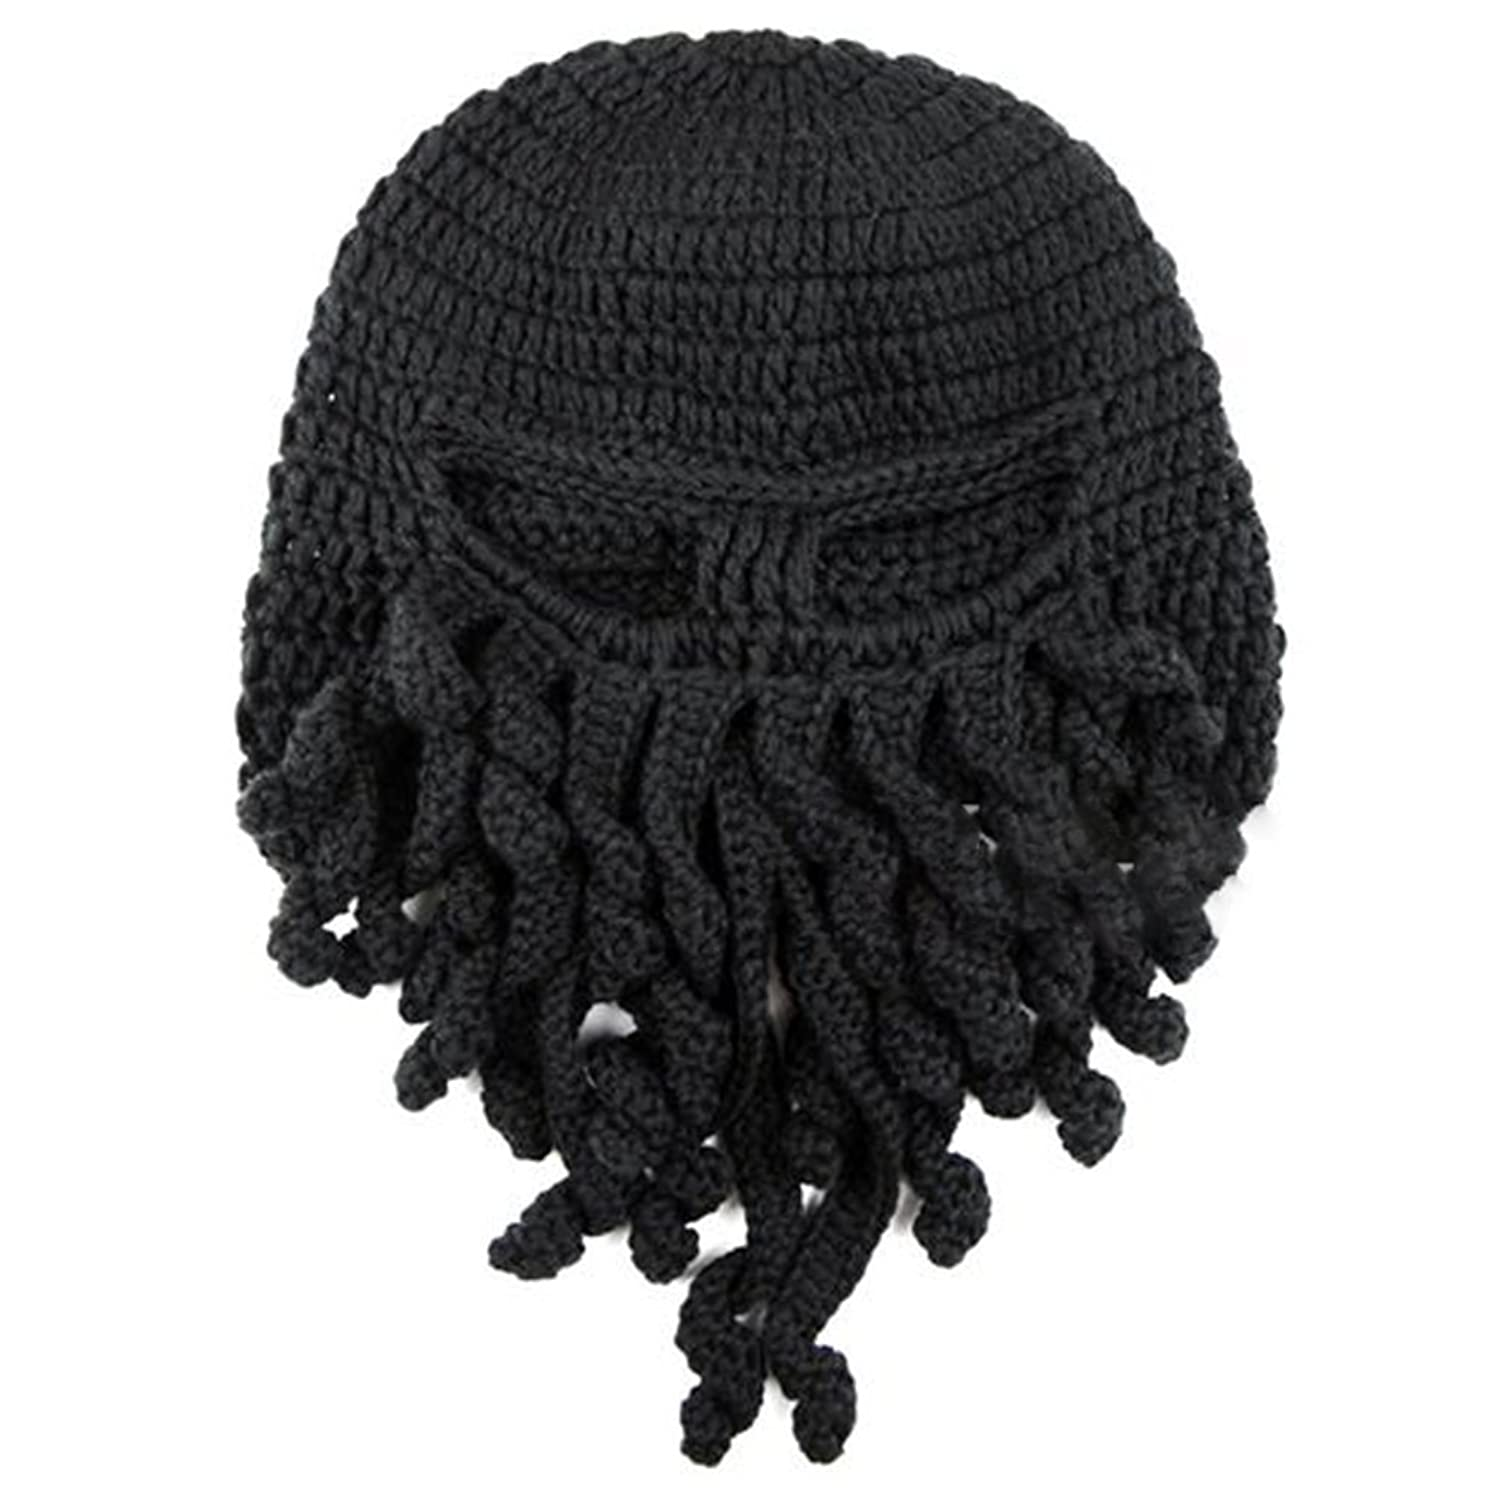 Amazon.com: Tentacle Octopus Cthulhu Knit Beanie Hat Fisher Cap Wind ...